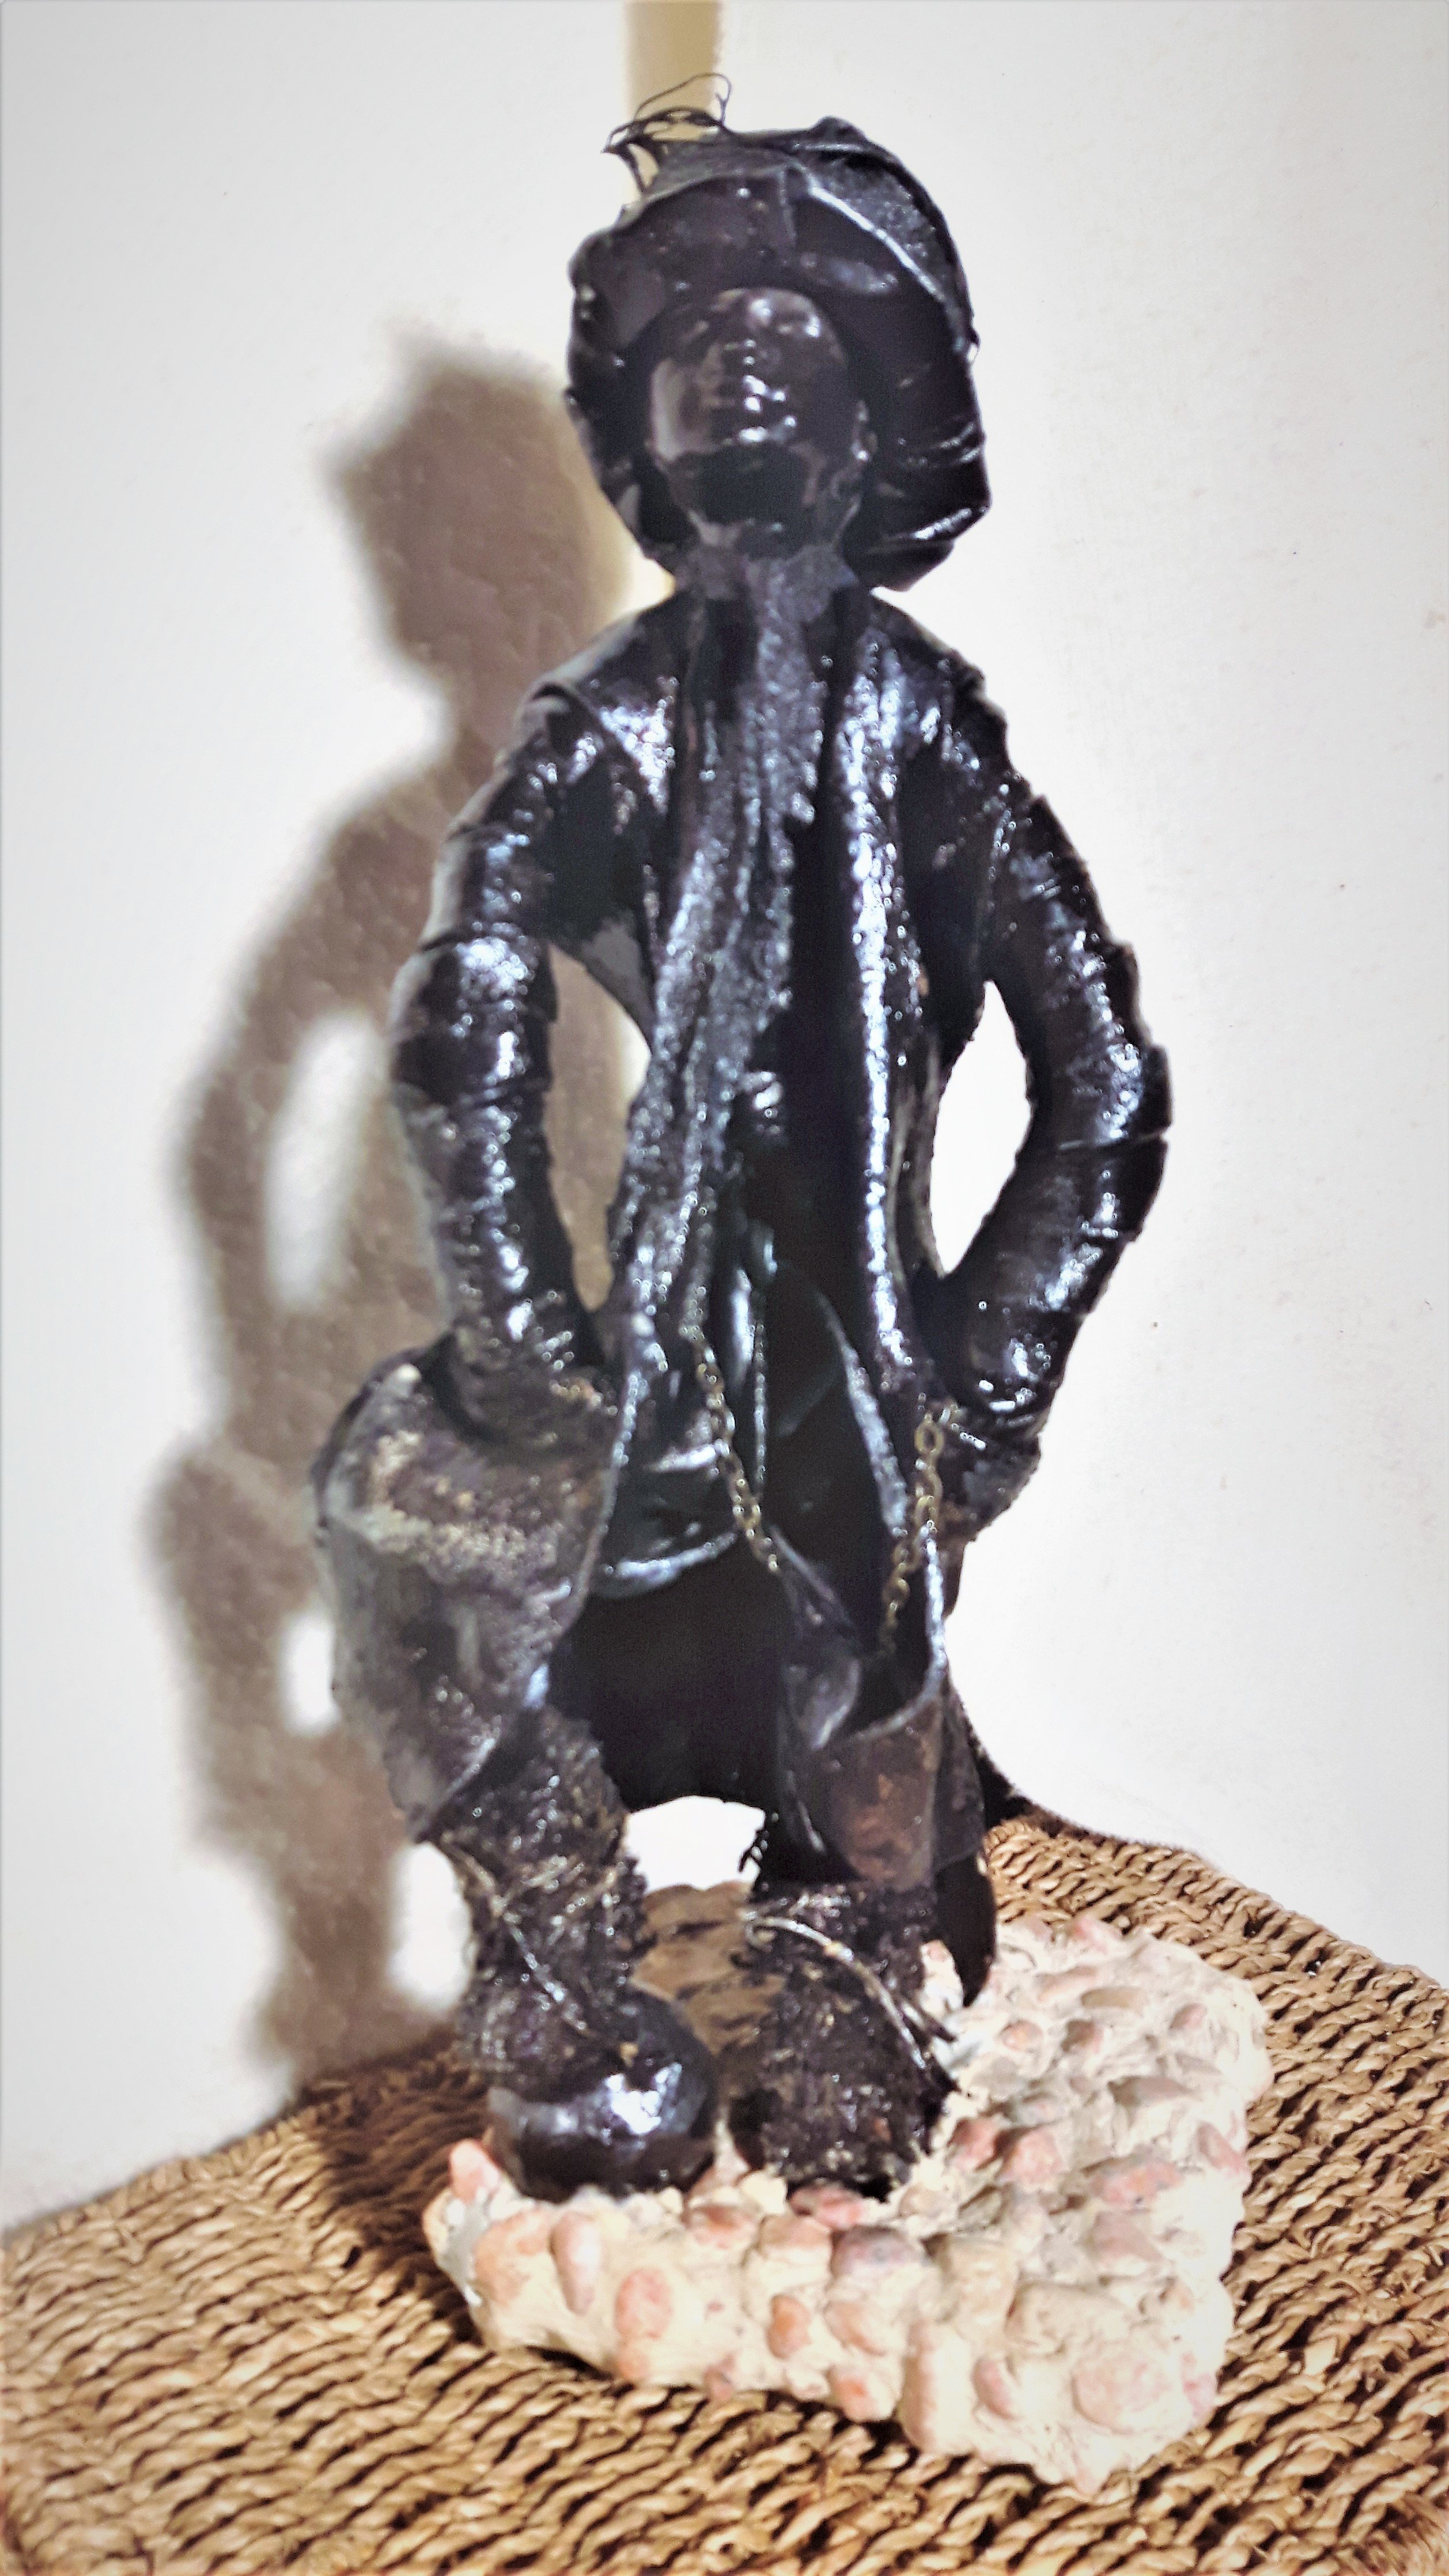 Laura Scott; dandy man, 2016, Original Mixed Media, 5 x 14 inches. Artwork description: 241 victorianfabricsculpturestonedandy manhand crafted...